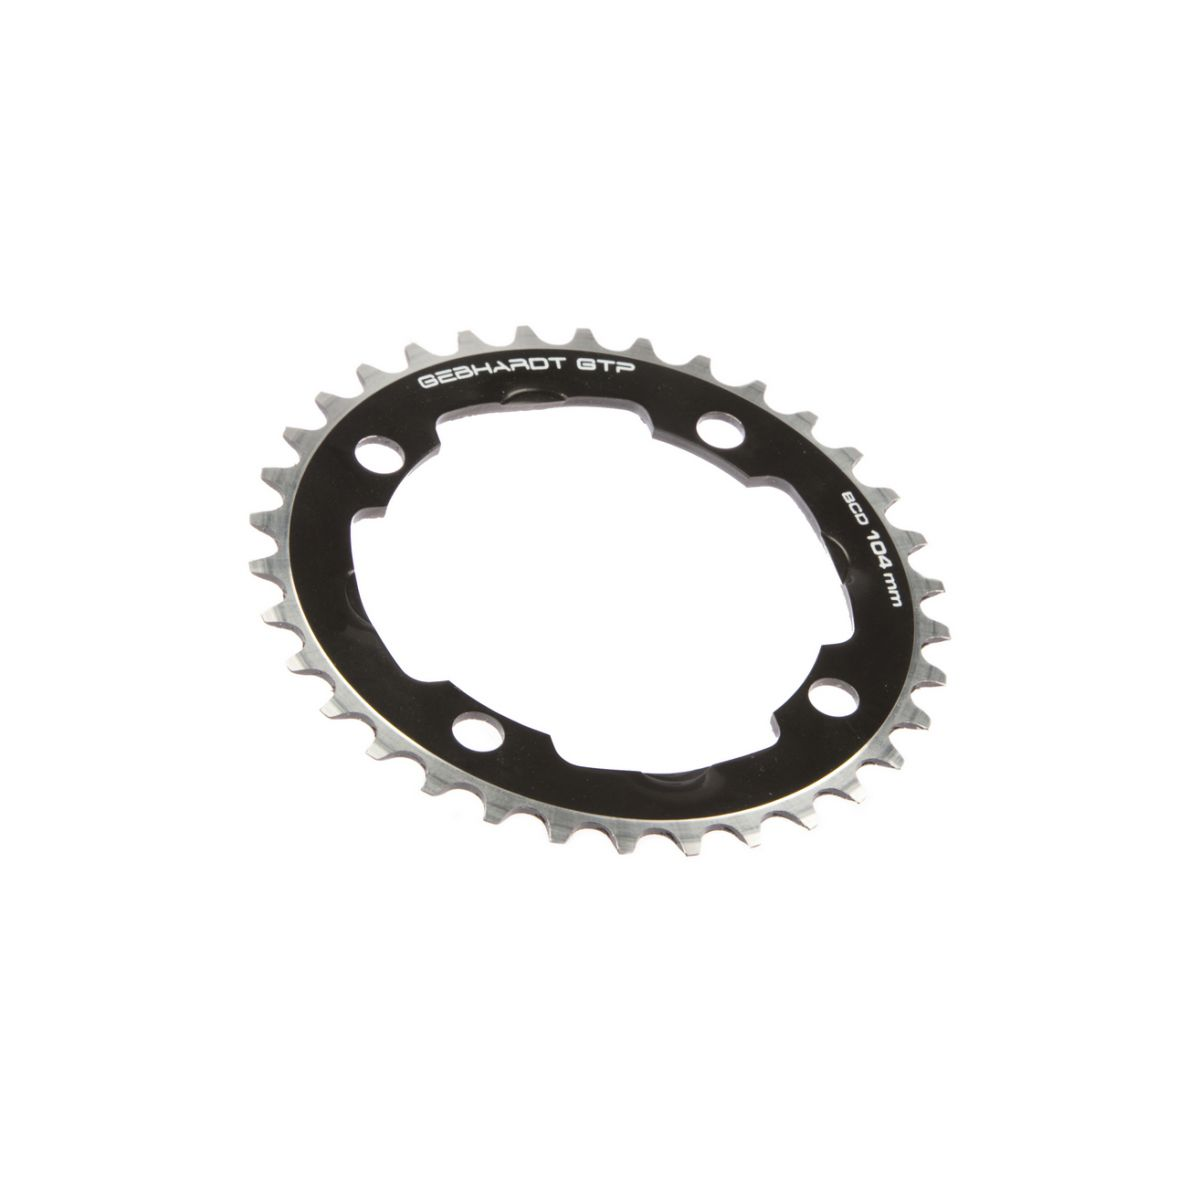 gebhardt chainring classic bcd 104 mm 4hole 35t black